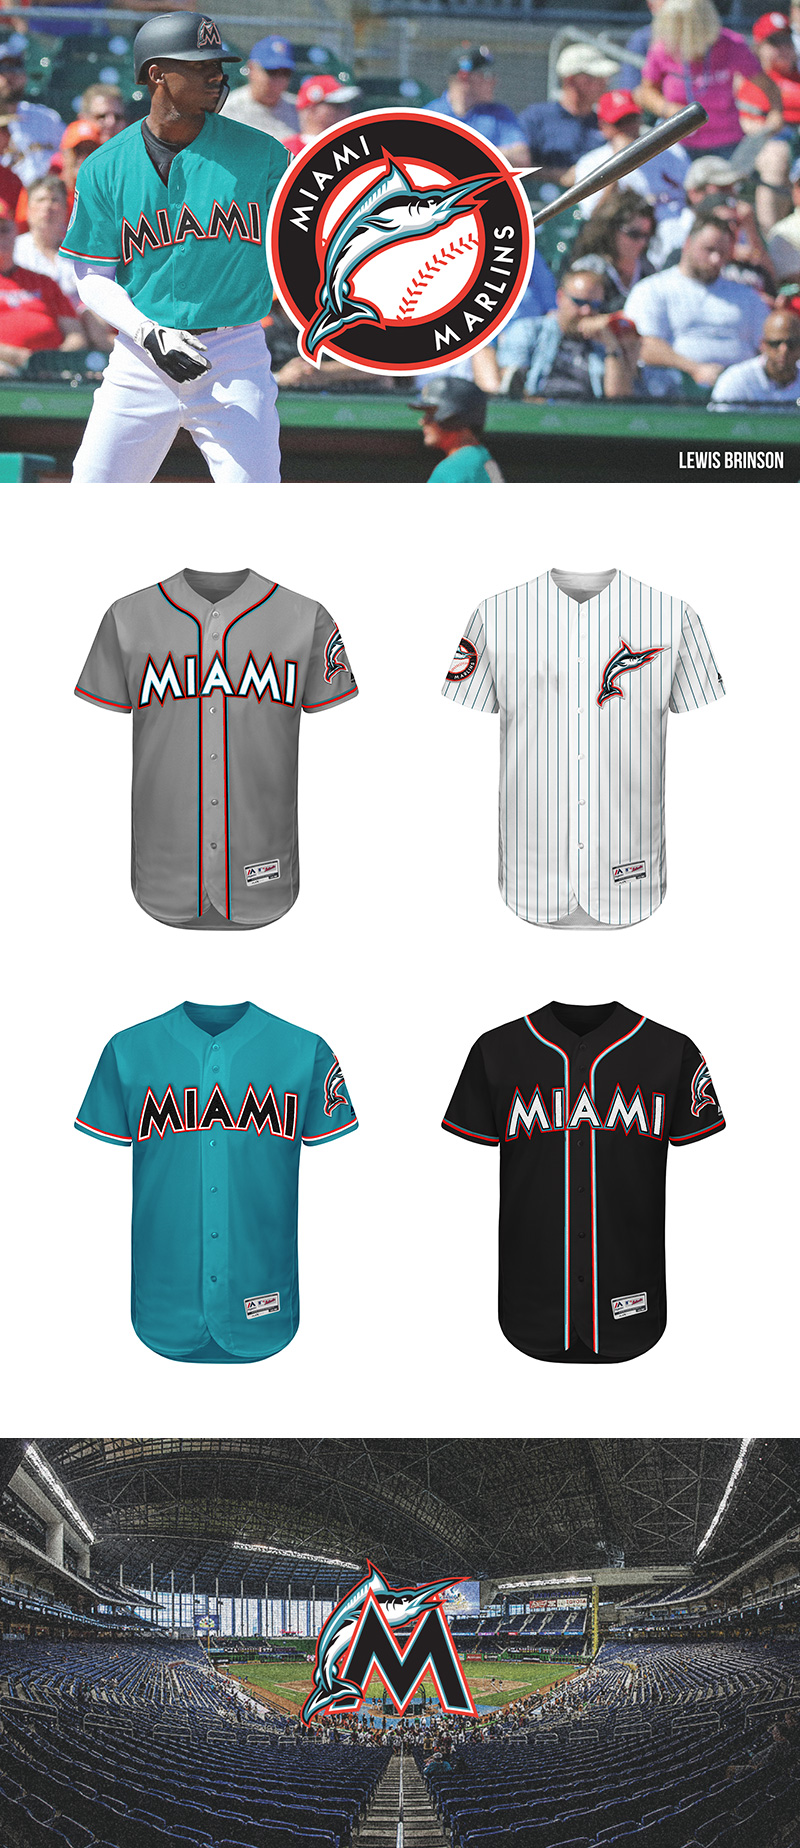 Miami Marlins Rebrand Concept by Alejandro Areces